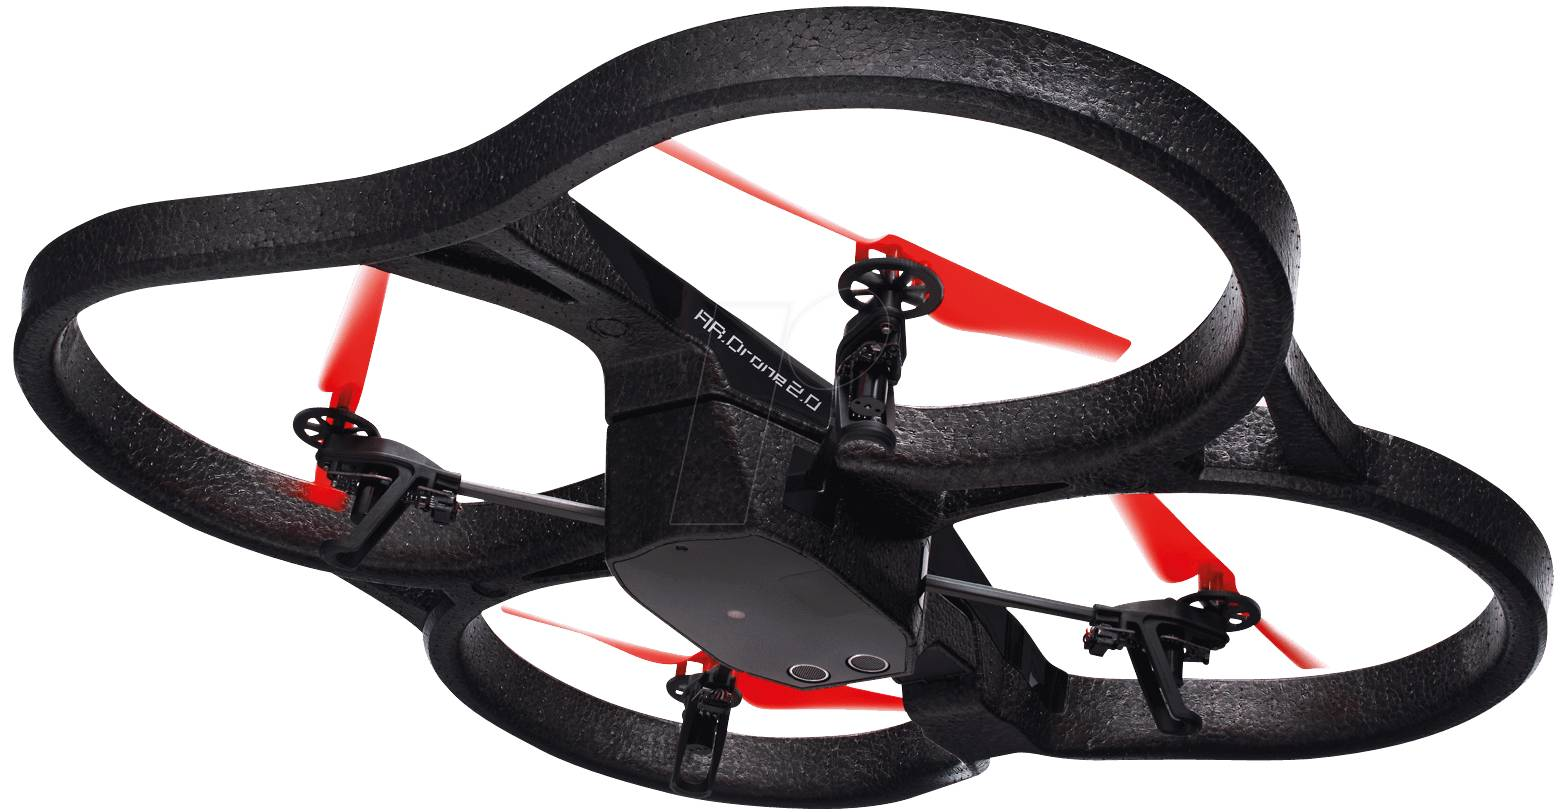 PARROT AR DRONE2.0PE RT - Quadrocopter Power Edition [red]